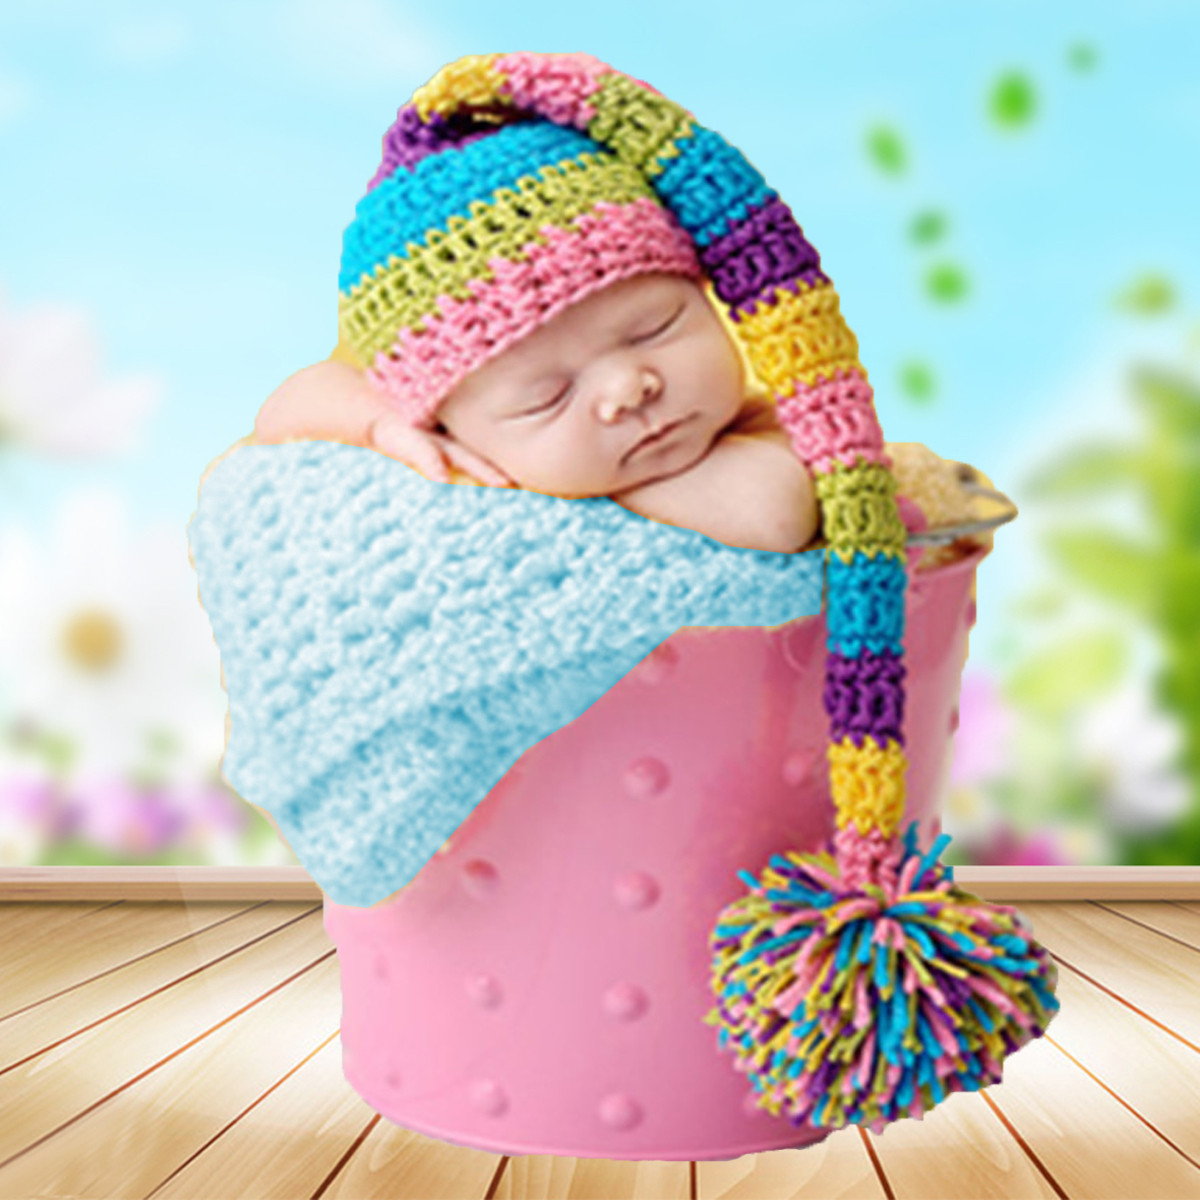 0-3 Months Baby Colorful Tail Hat Crochet Knit Cap Costume Photography Photo Prop